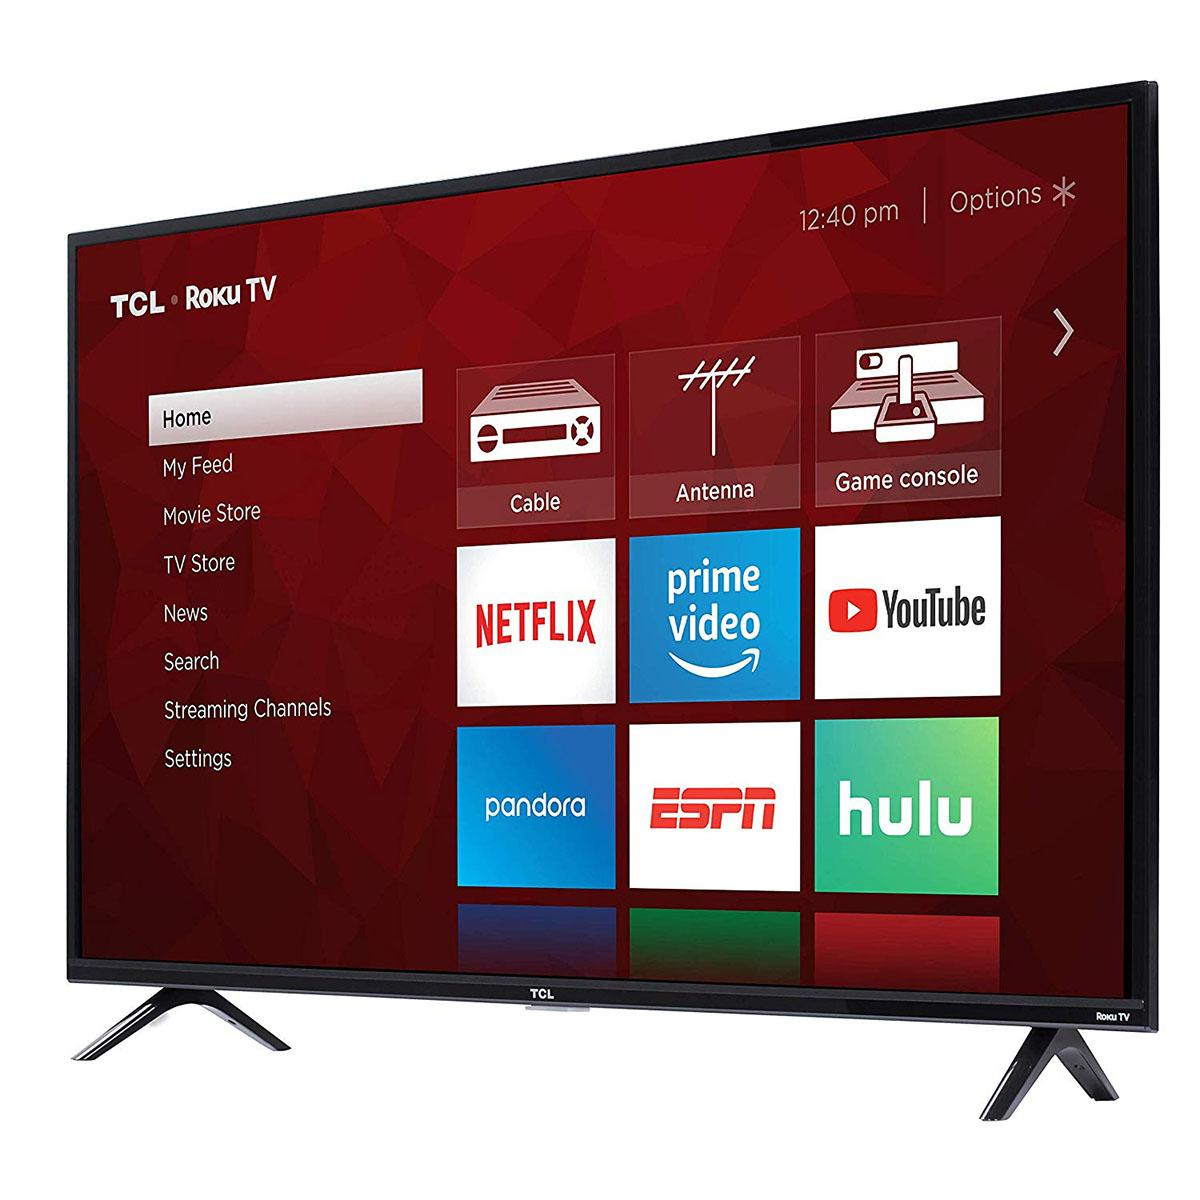 "TCL 49S325 49"" 1080p Smart Roku LED TV (2019) - $219.99 - $60 off or 21%"